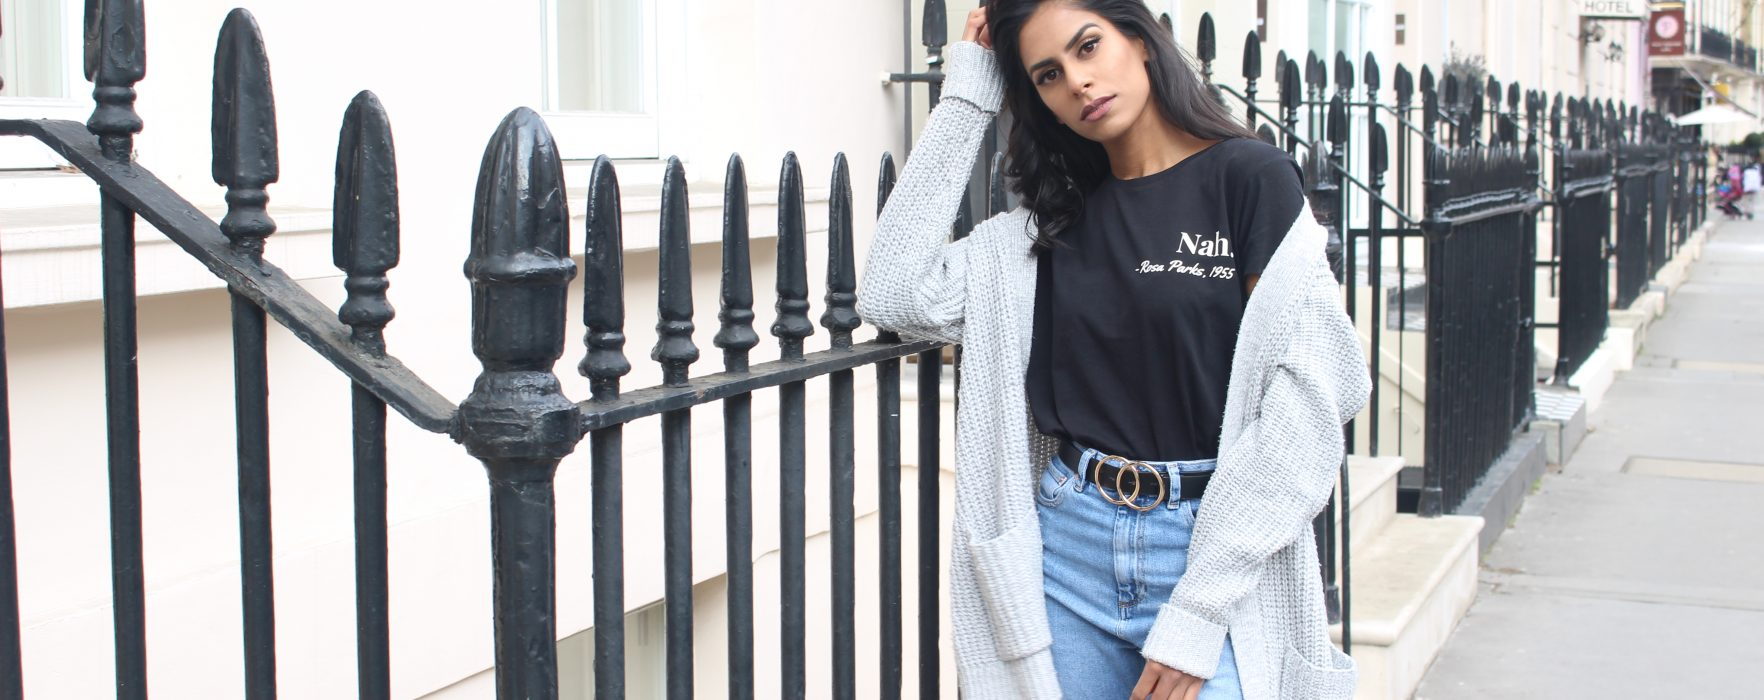 Meet the new clothing brand 'Rani & Co' channeling everything female empowerment